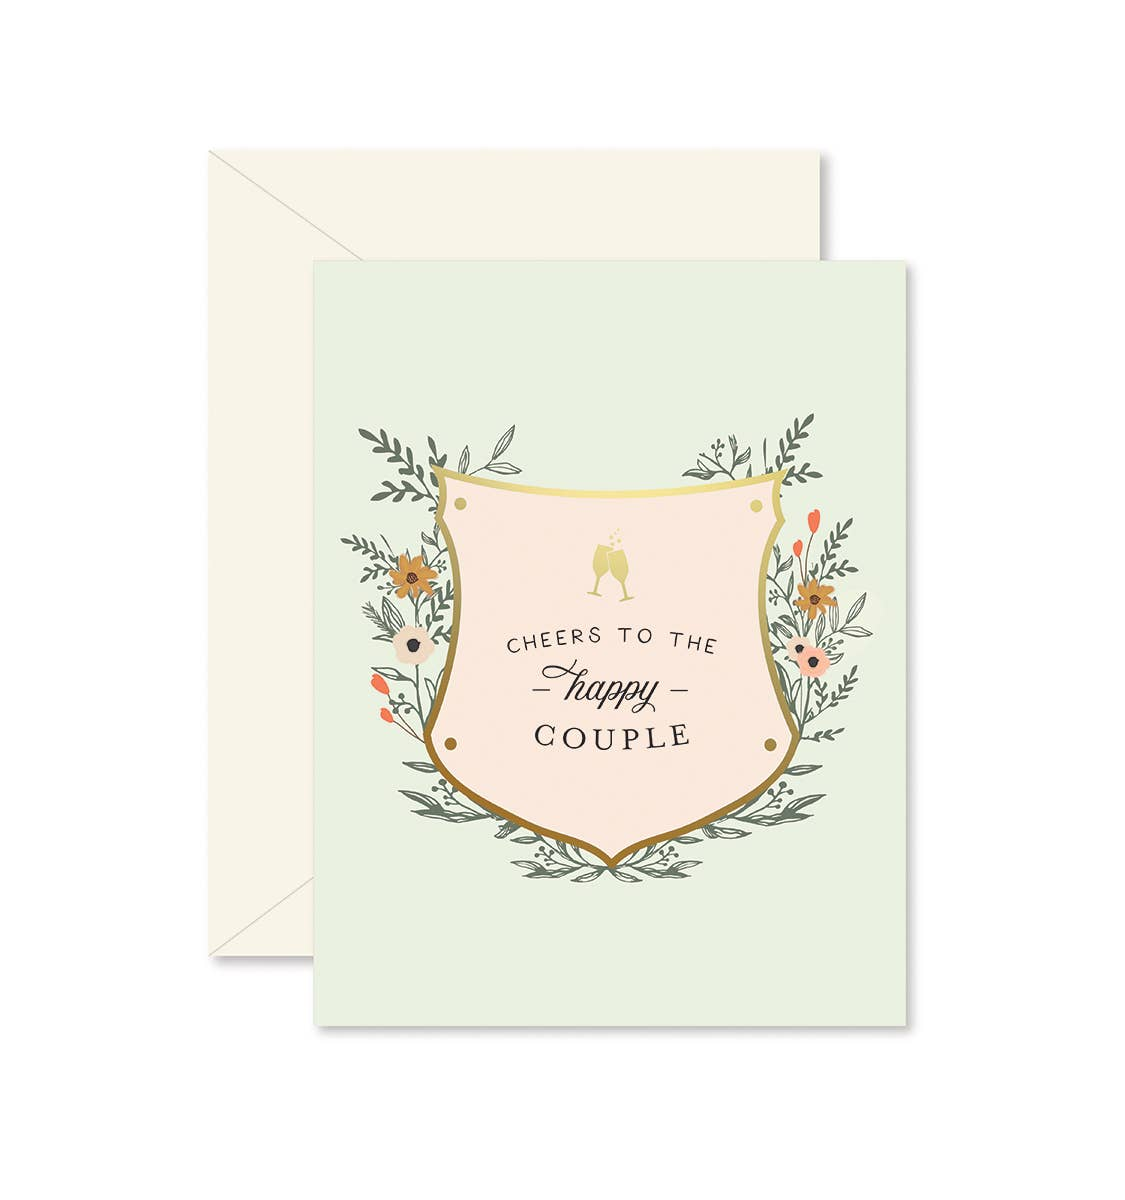 Cheers to the Happy Couple Greeting Card   Trada Marketplace